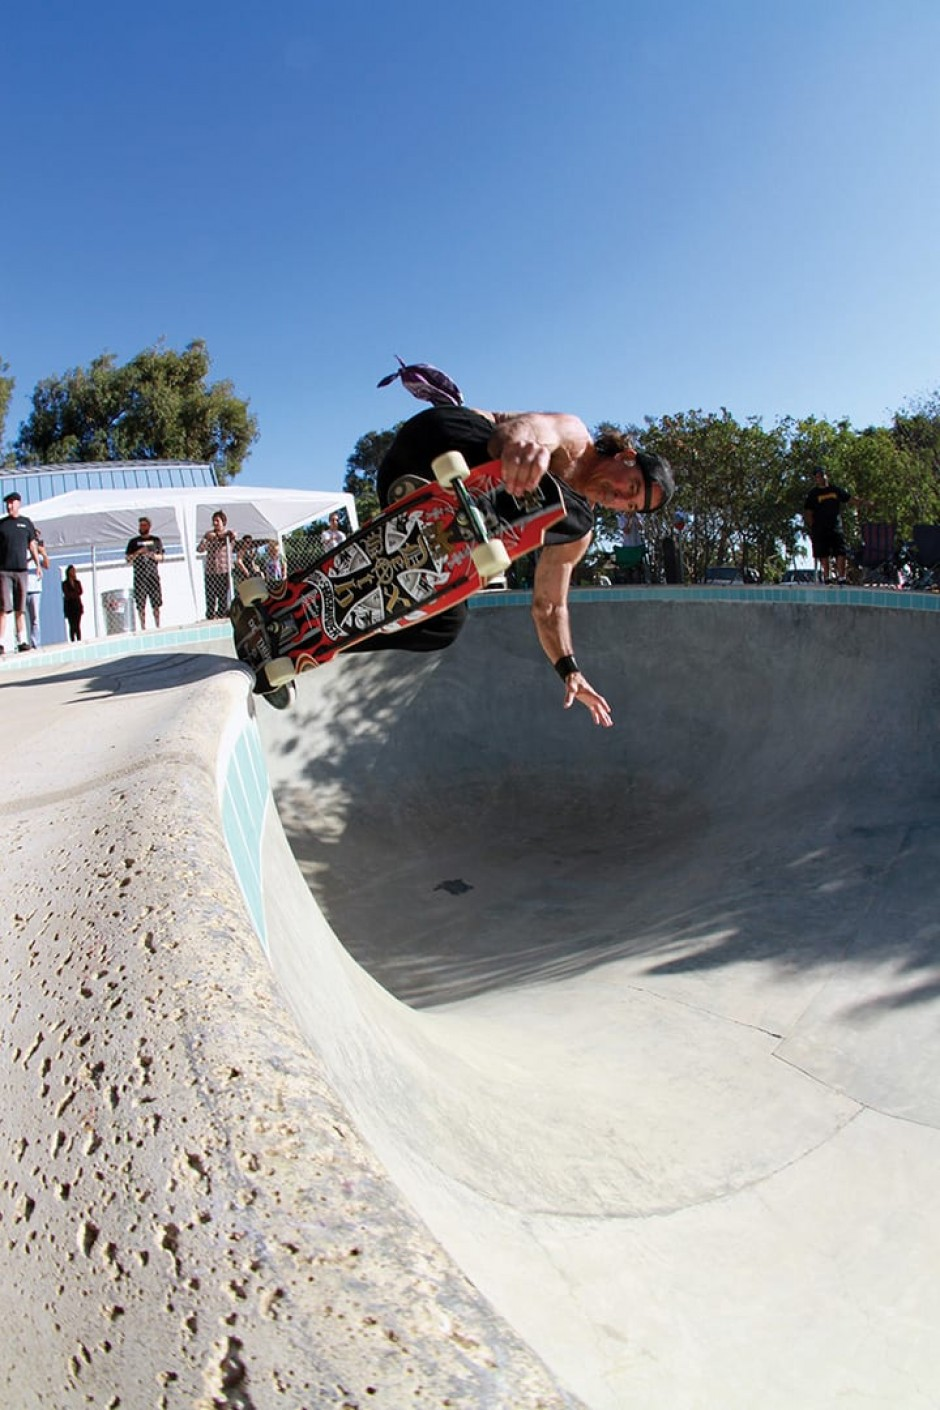 David Hackett whips a backside tail block attack, deep in the heart of Malibu at the N-Men Reunion 2015. Photo by Dan Levy